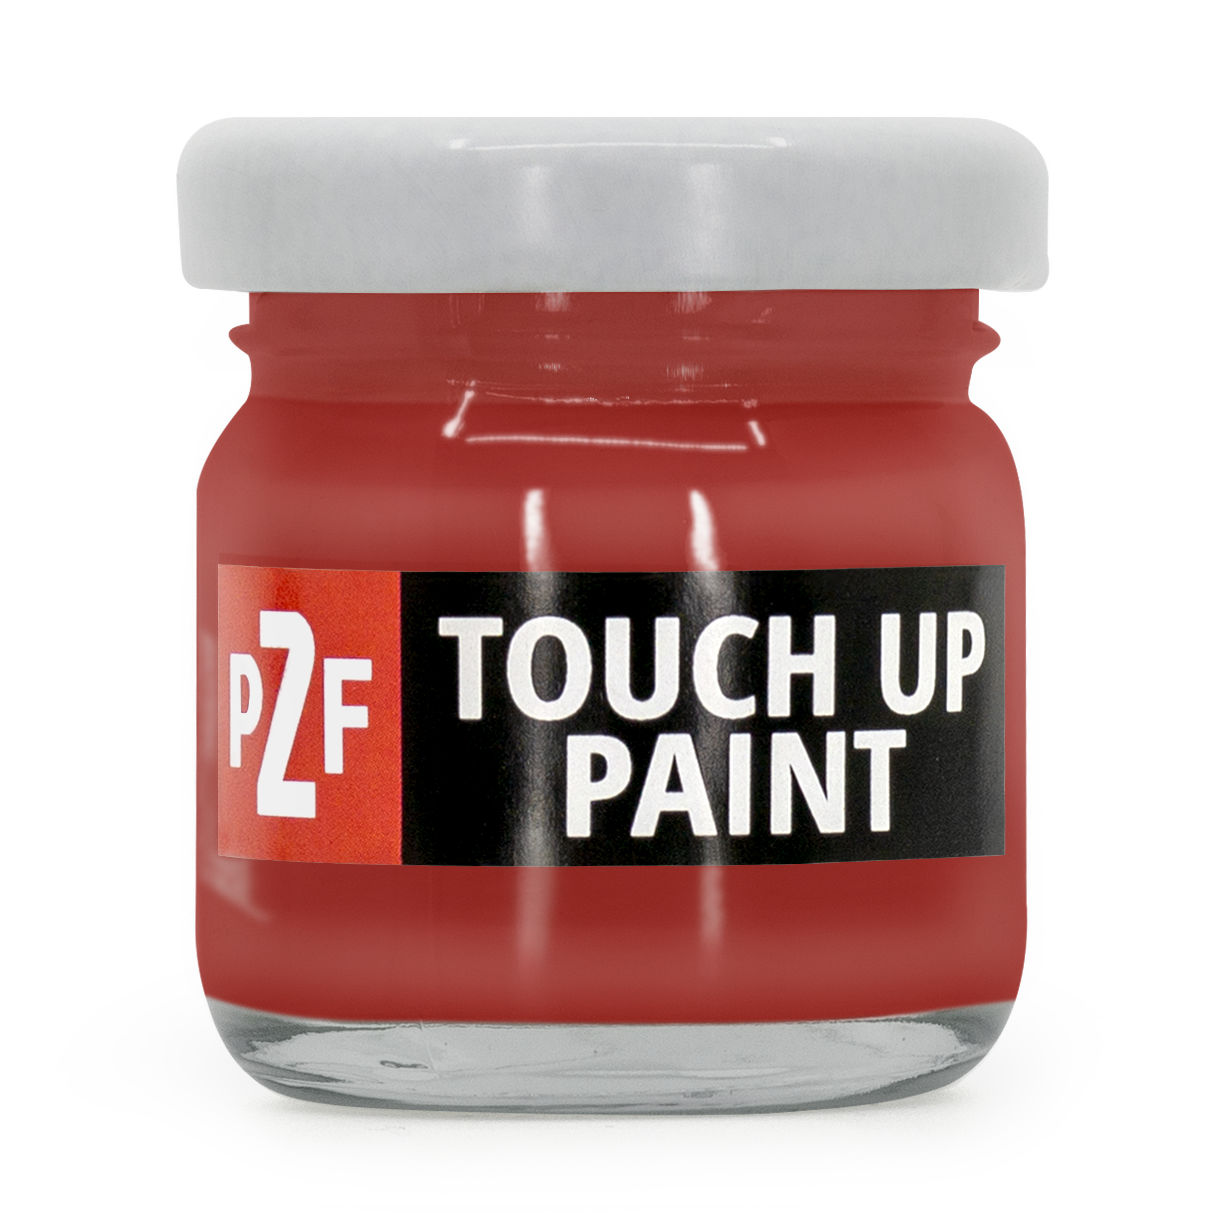 Ferrari Rosso Corsa 322 Touch Up Paint | Rosso Corsa Scratch Repair | 322 Paint Repair Kit